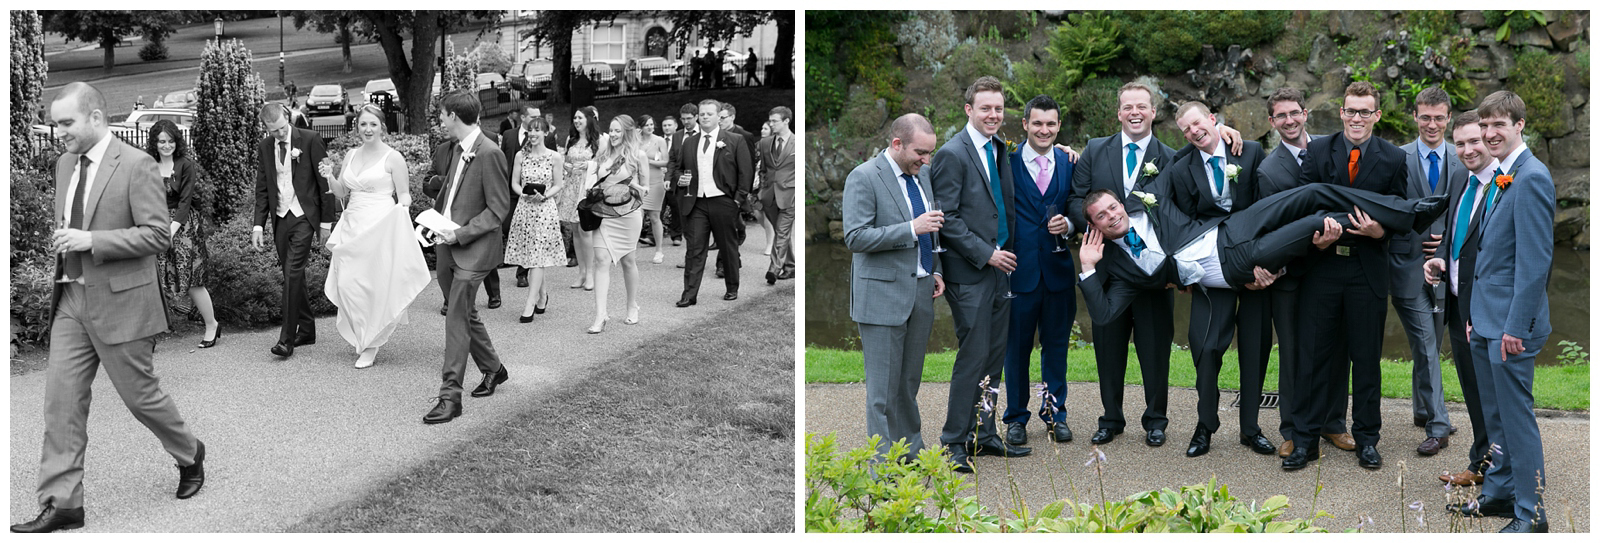 Wedding photography in the Pavilion Gardens in Buxton